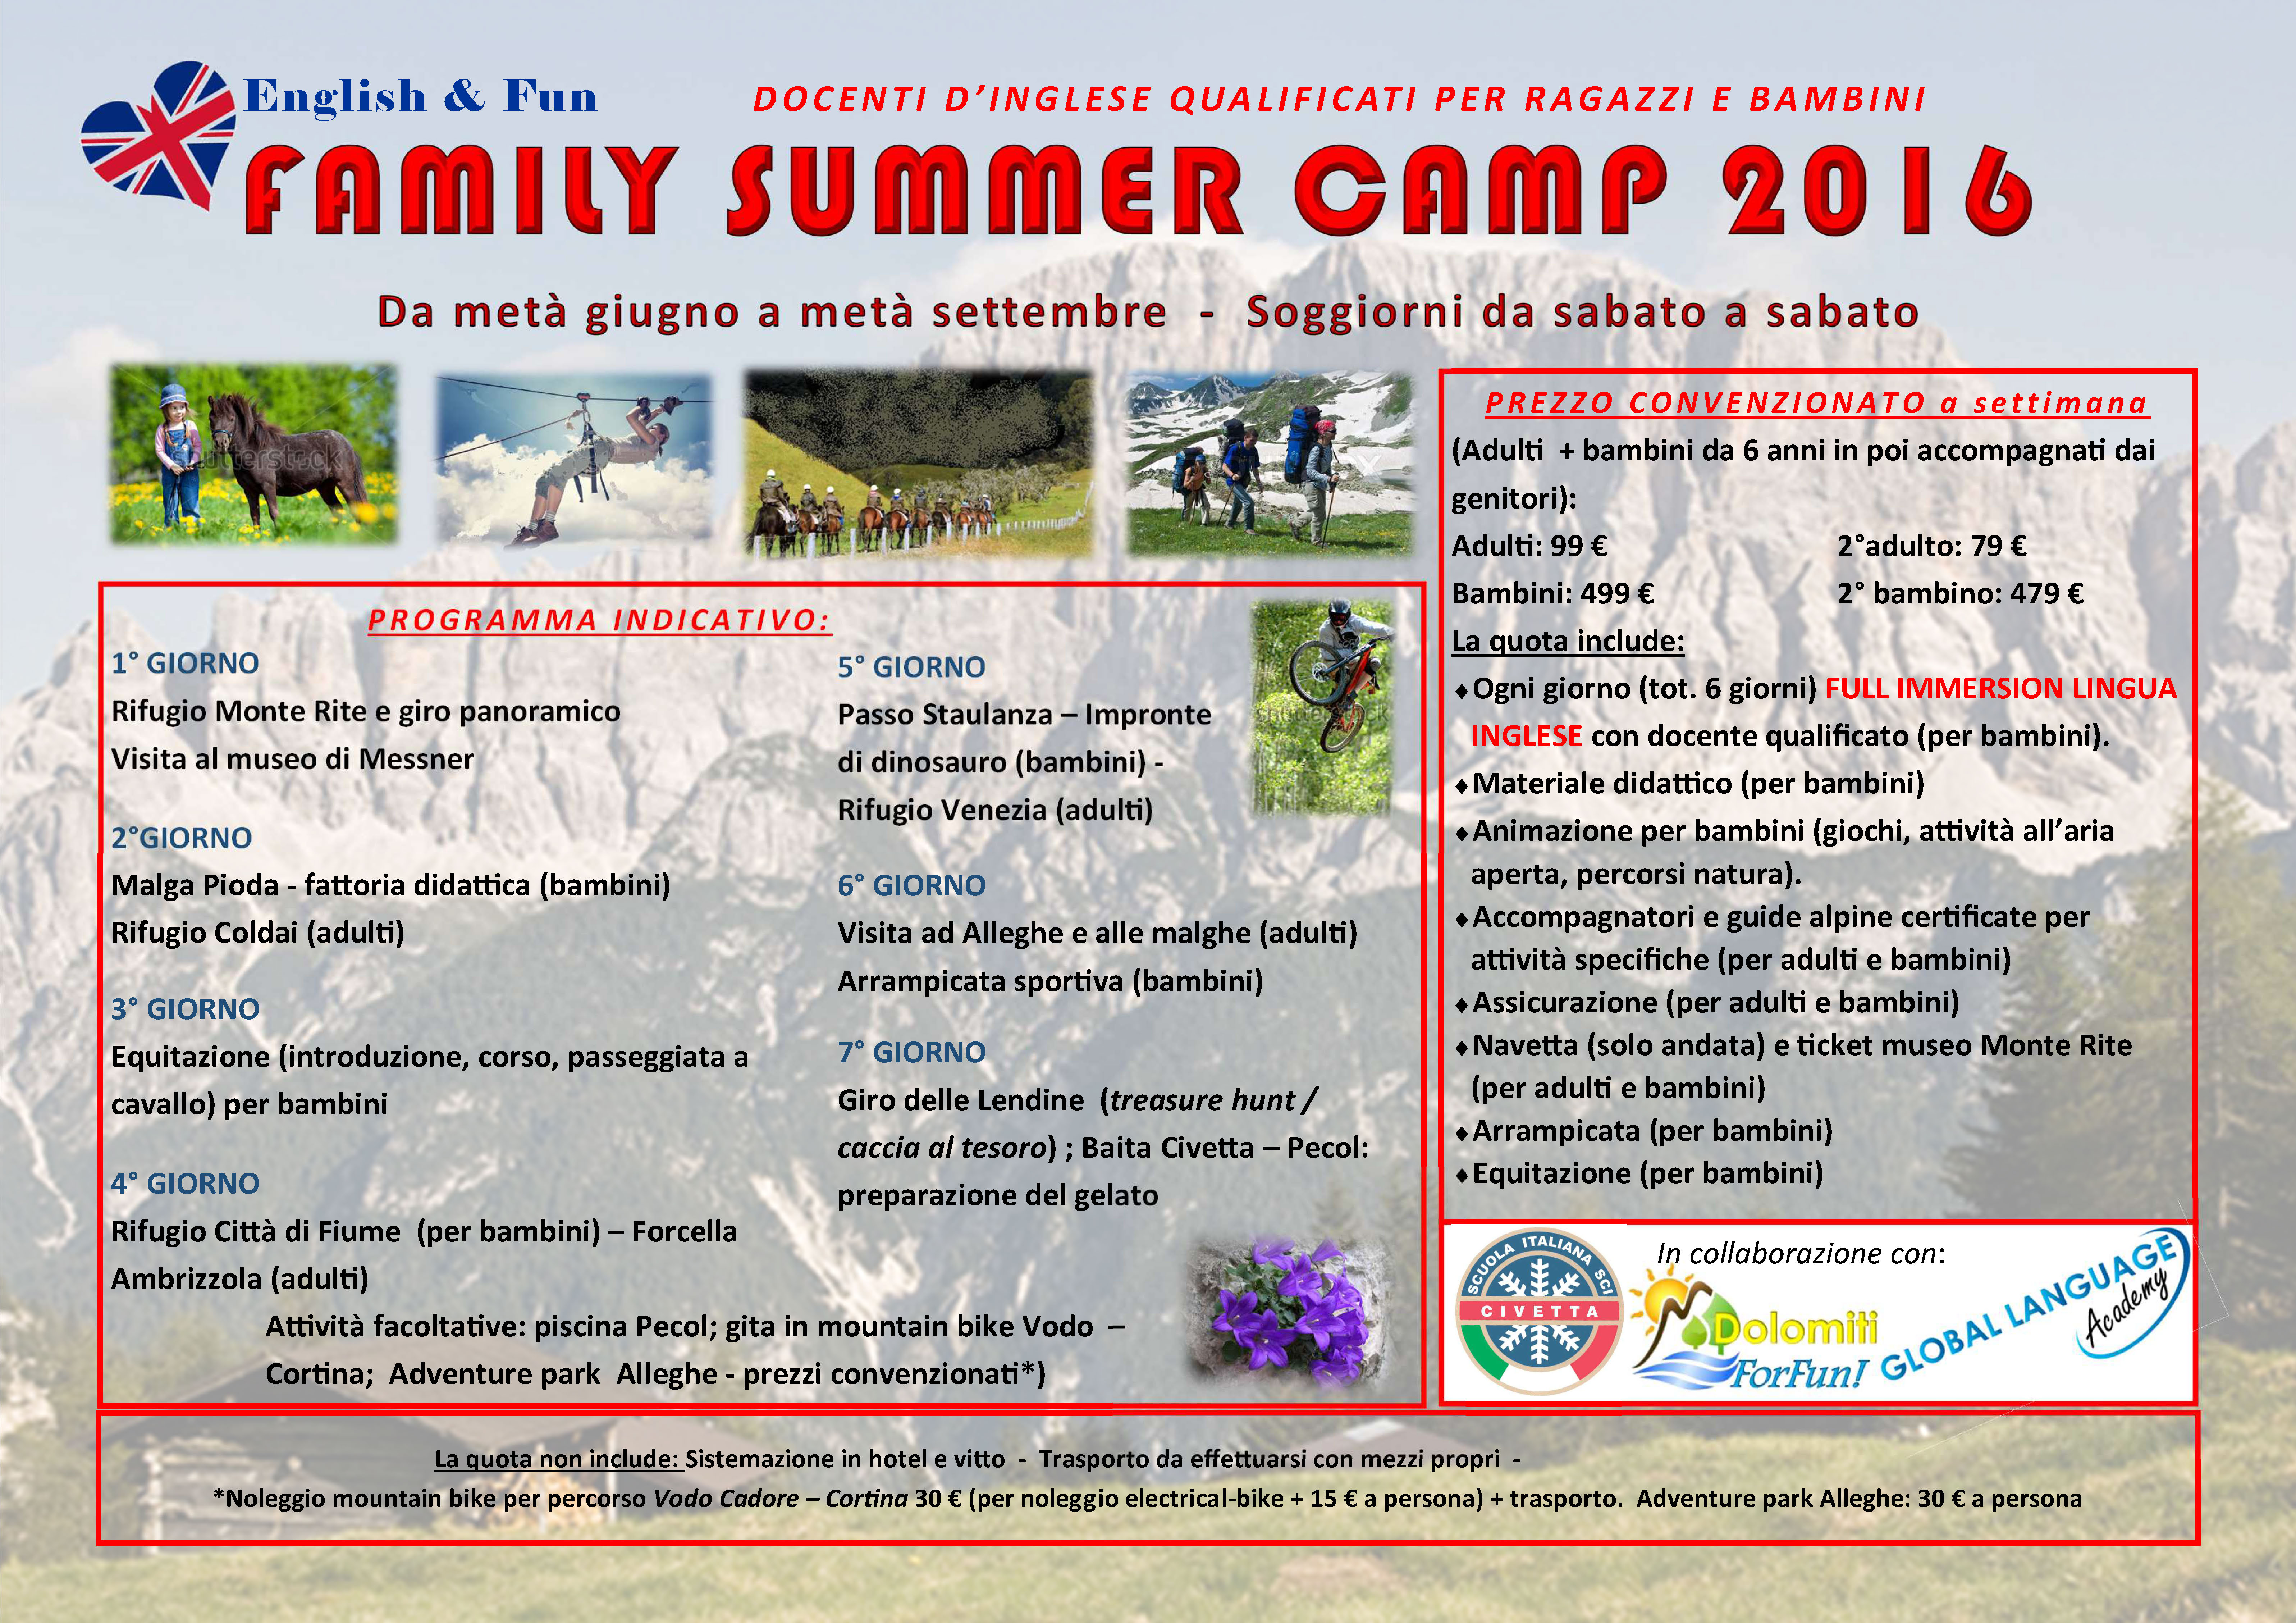 Family Summer Camp 2016